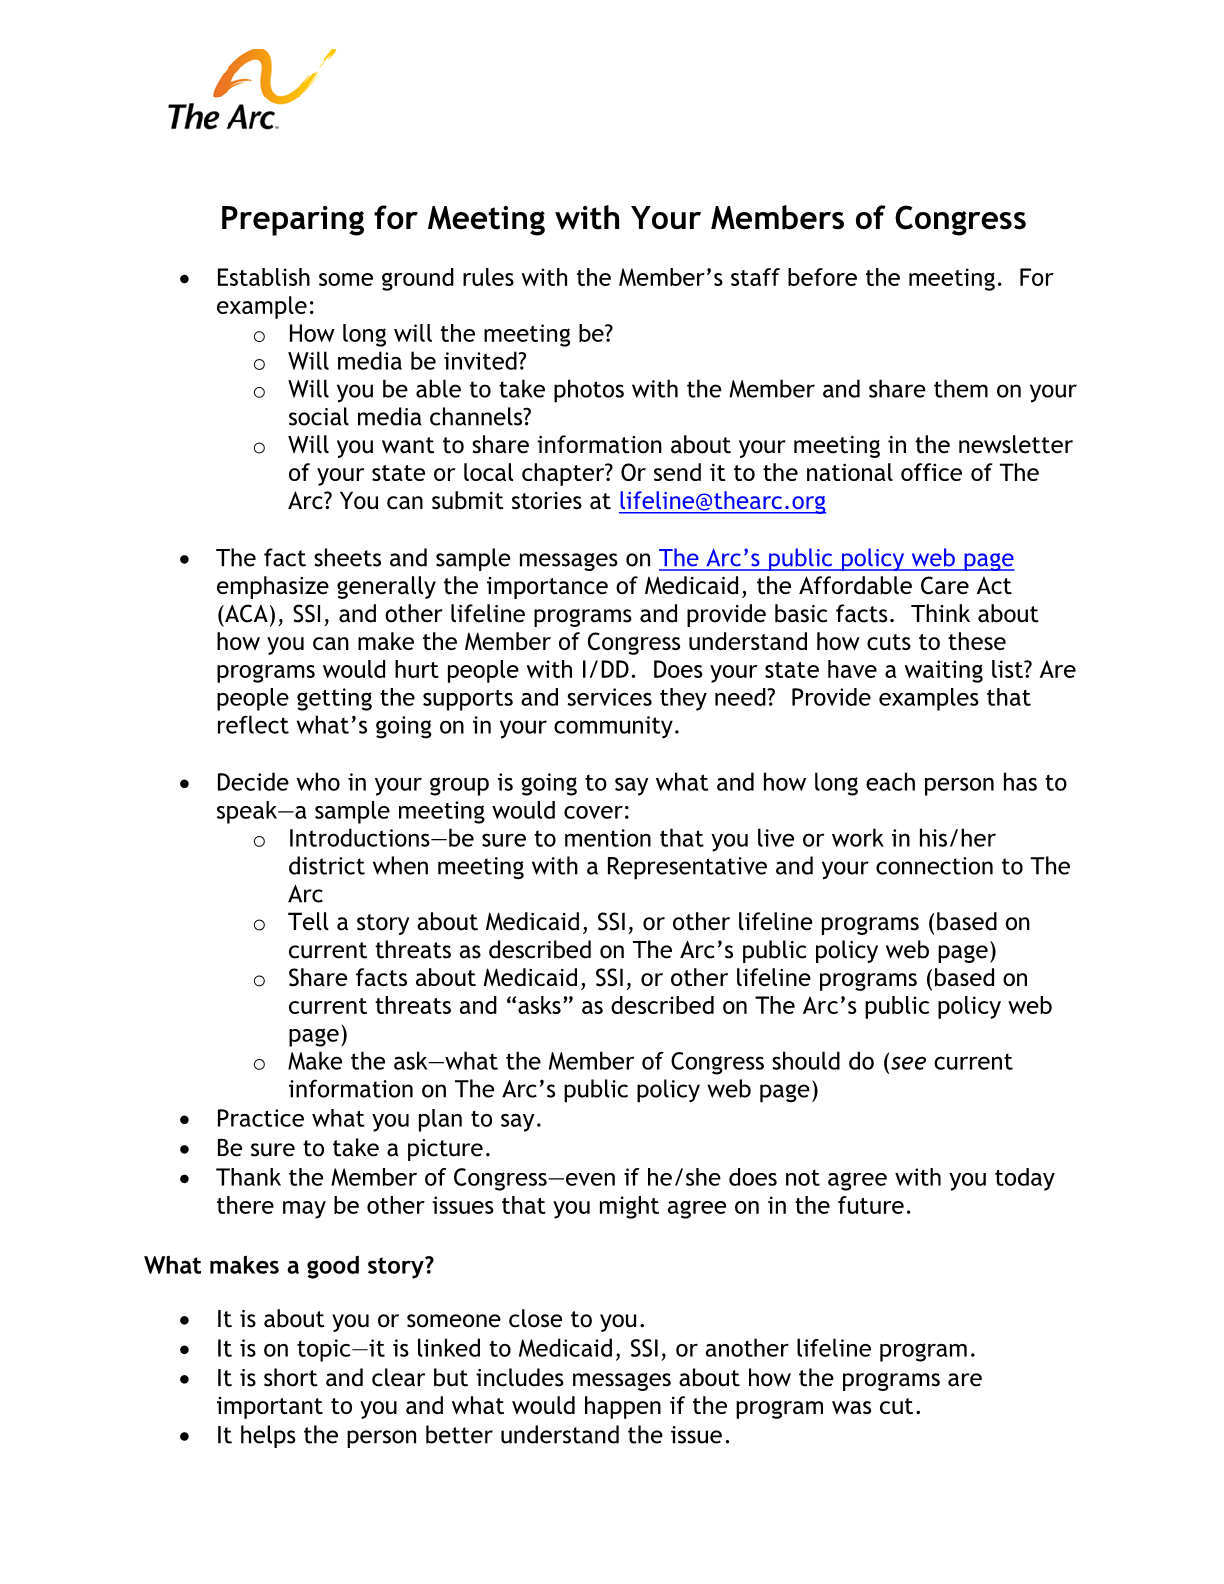 Preparing for Meetings with Members of Congress